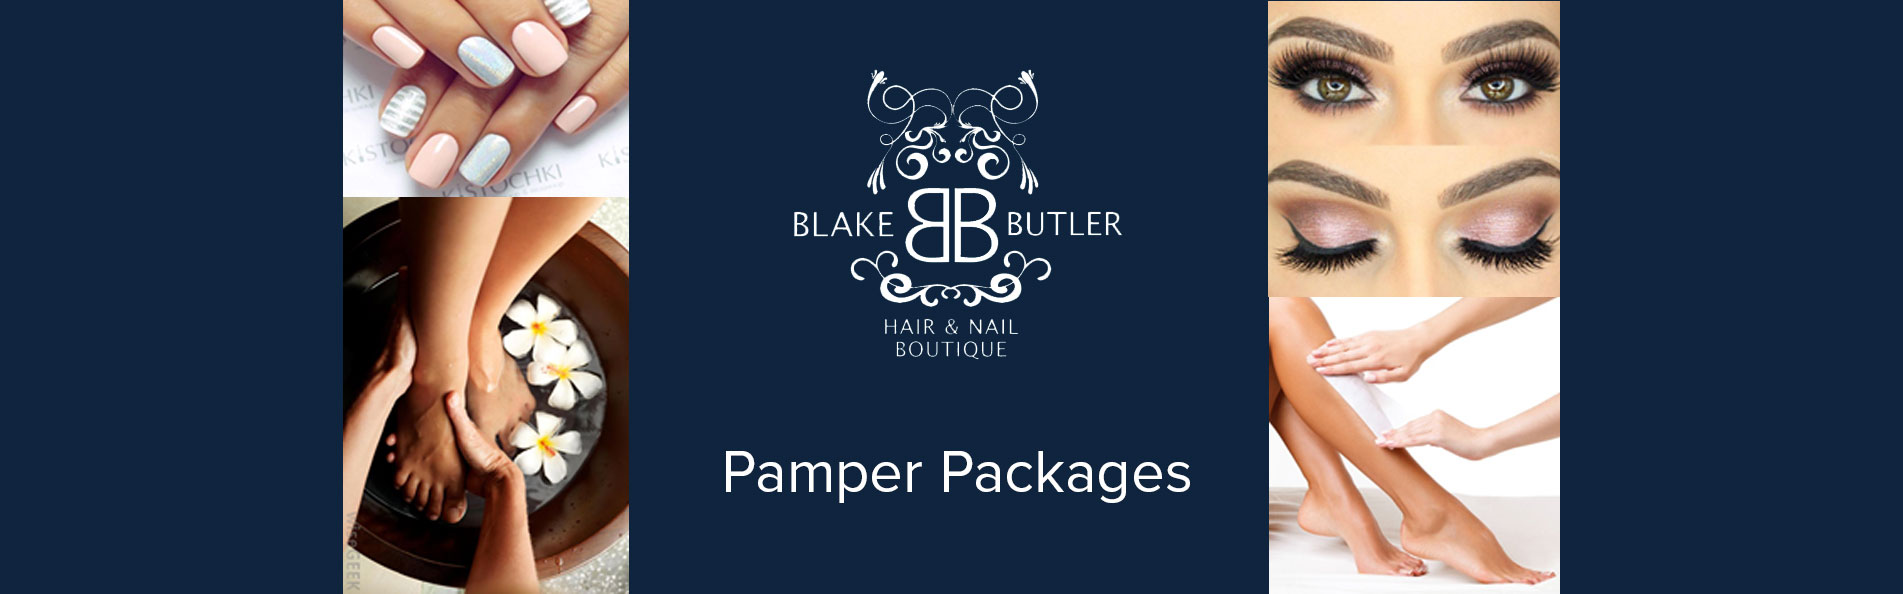 pamper-packages